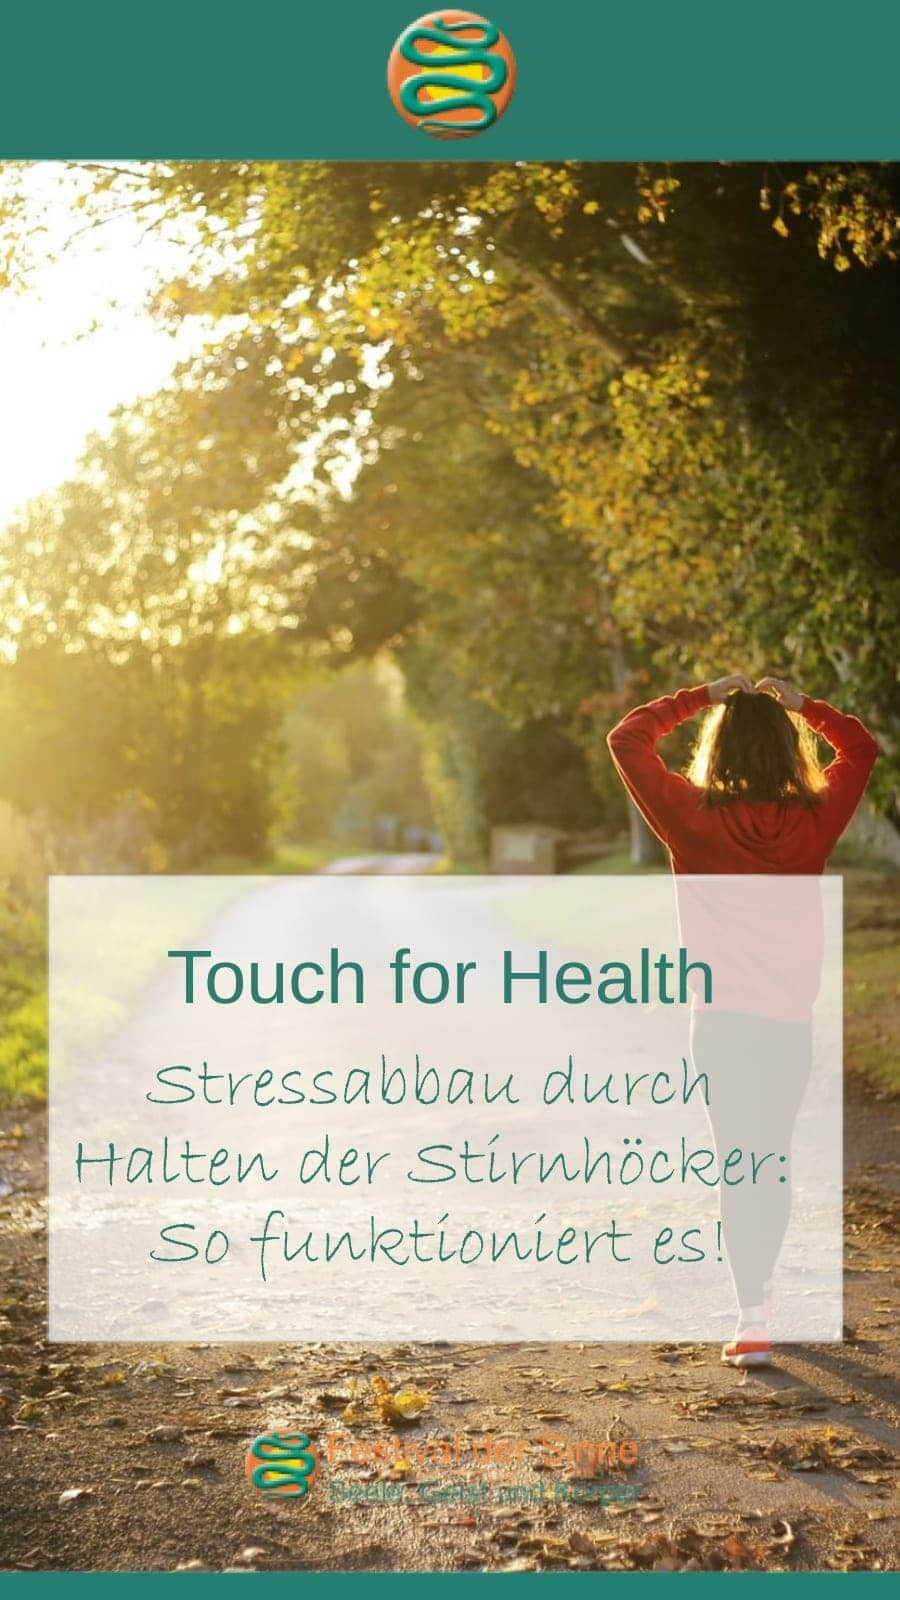 #Touch for #Health #Funktionsweise: #Stressabbau